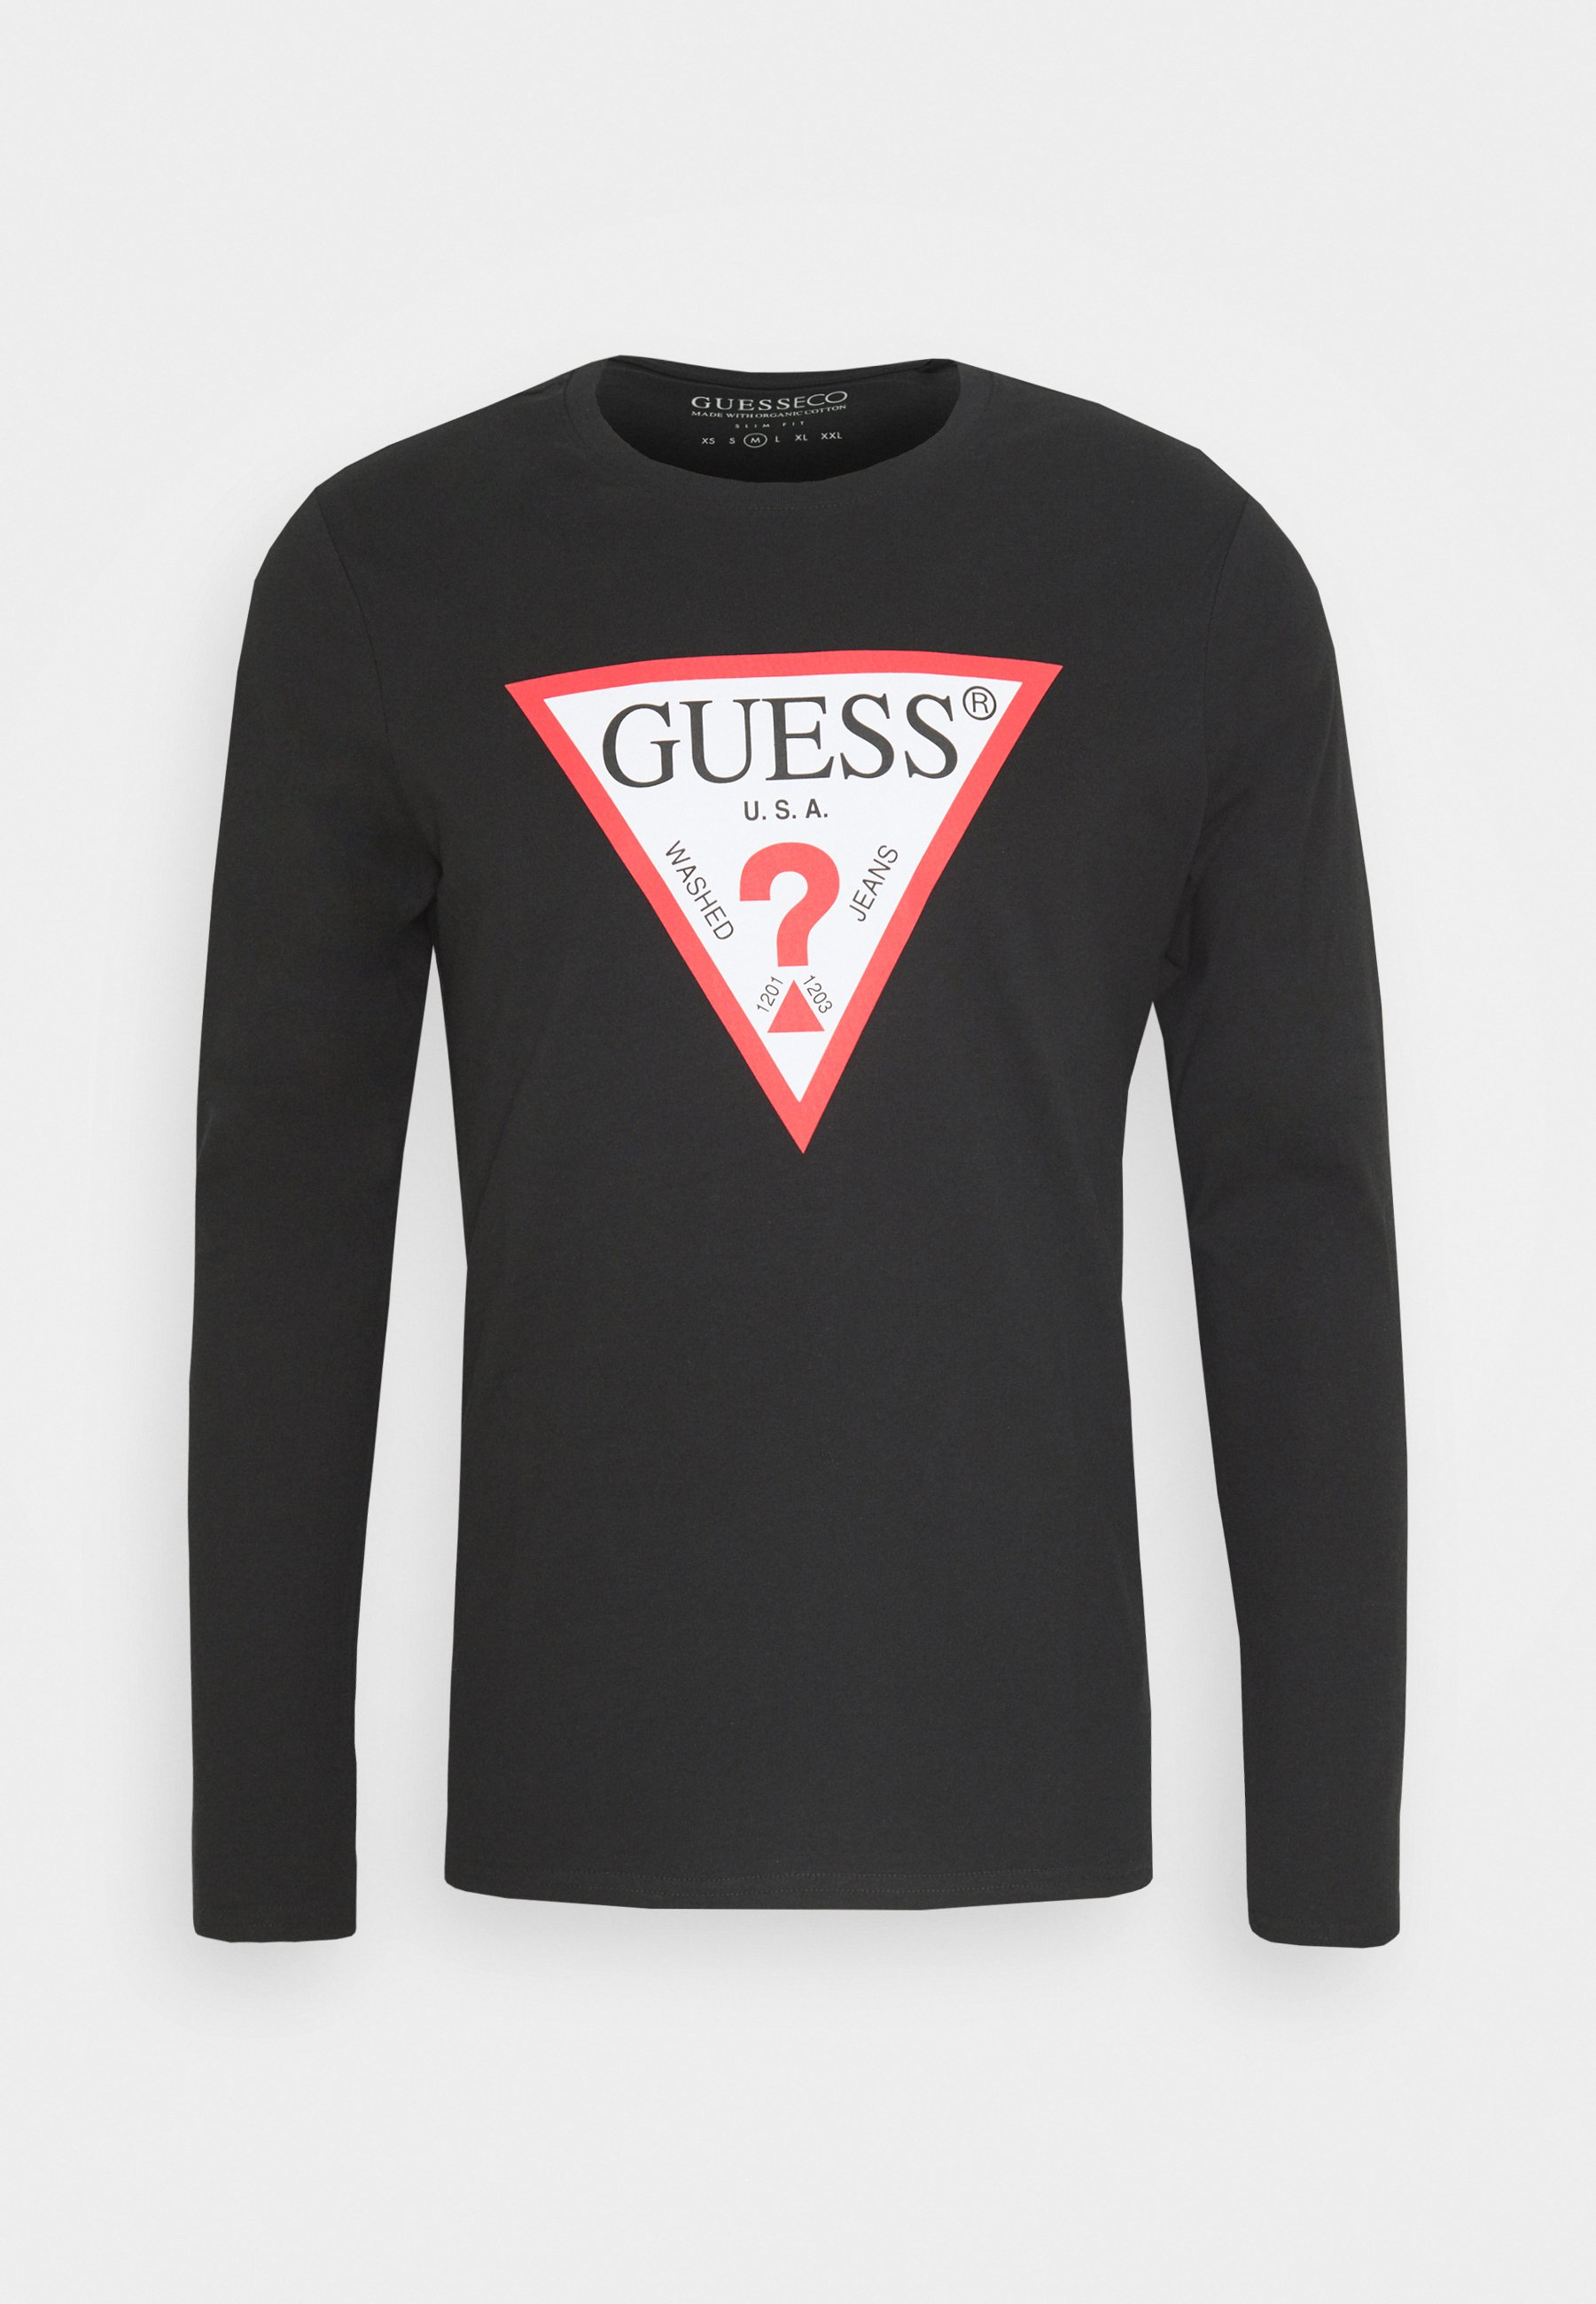 Hombre Camisetas Guess Camiseta interior jet black,guess